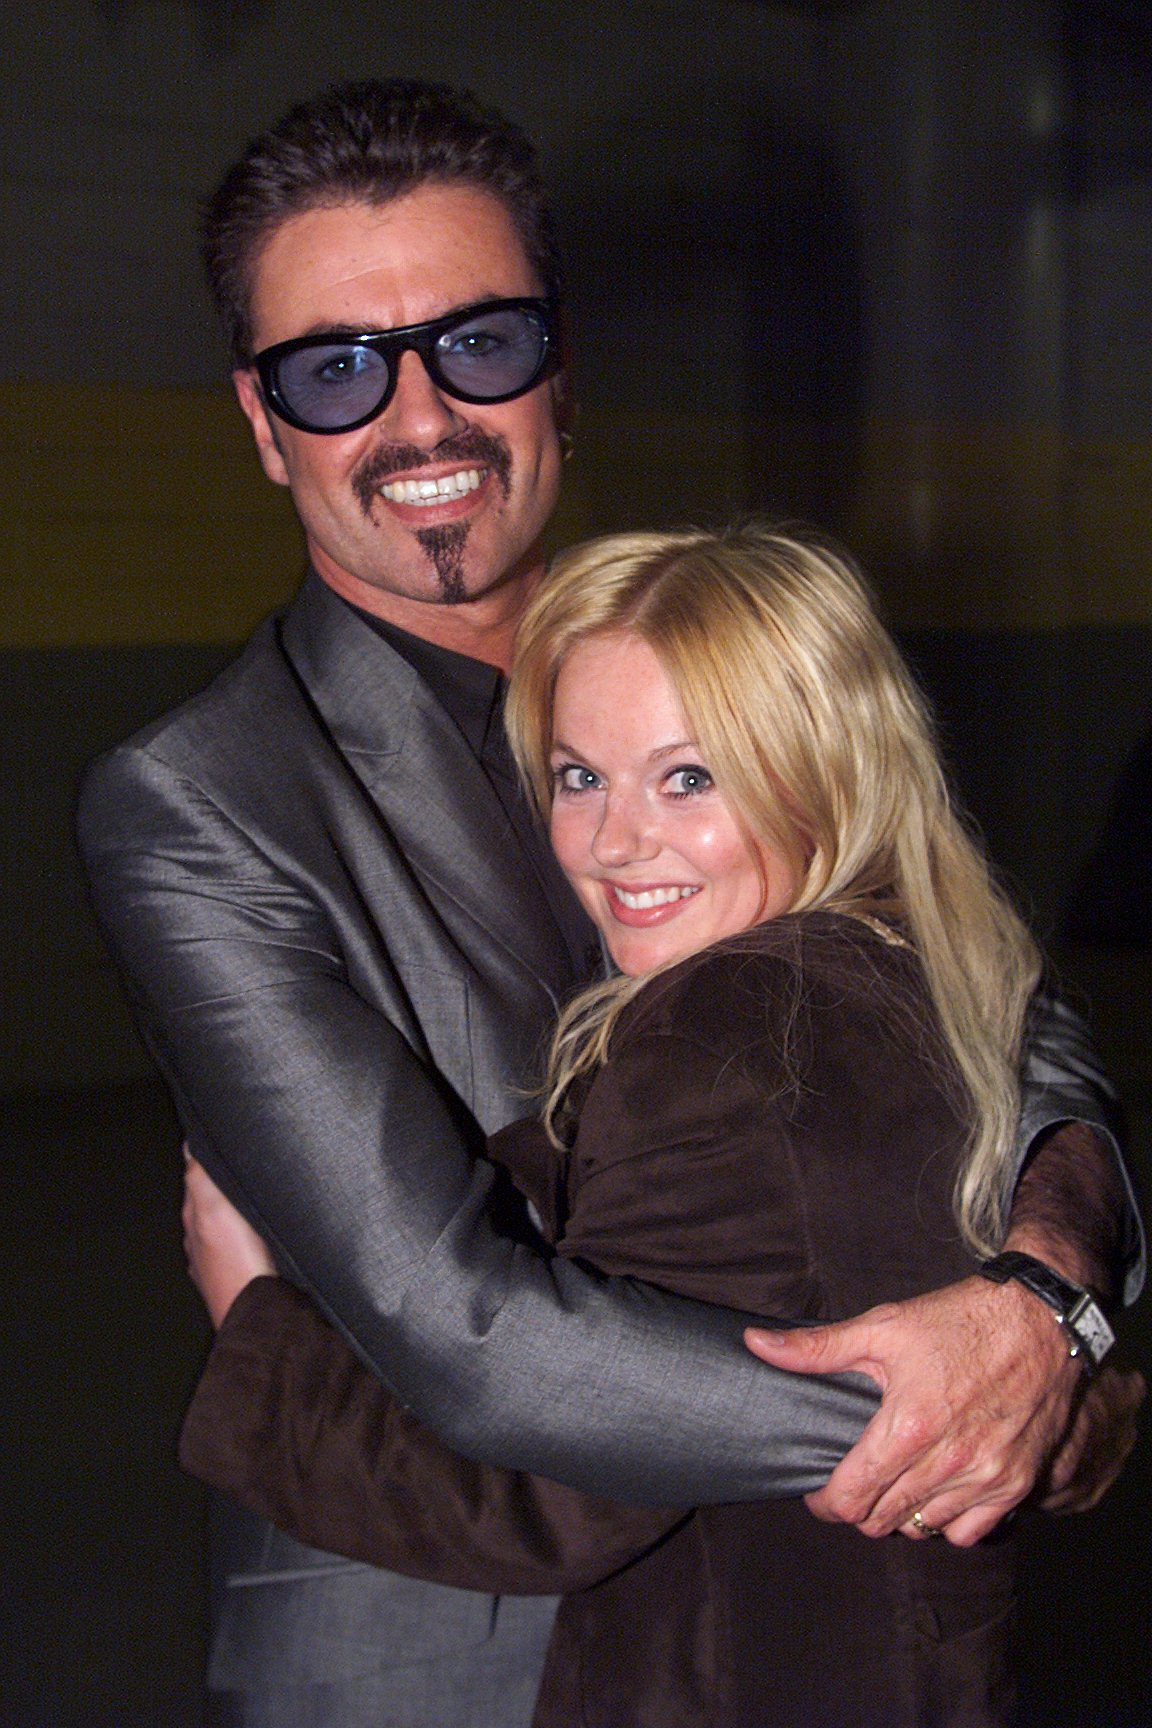 George Michael and Geri Halliwell at the RFK Stadium in Washington, D.C. (Photo by Kevin Mazur/WireImage)